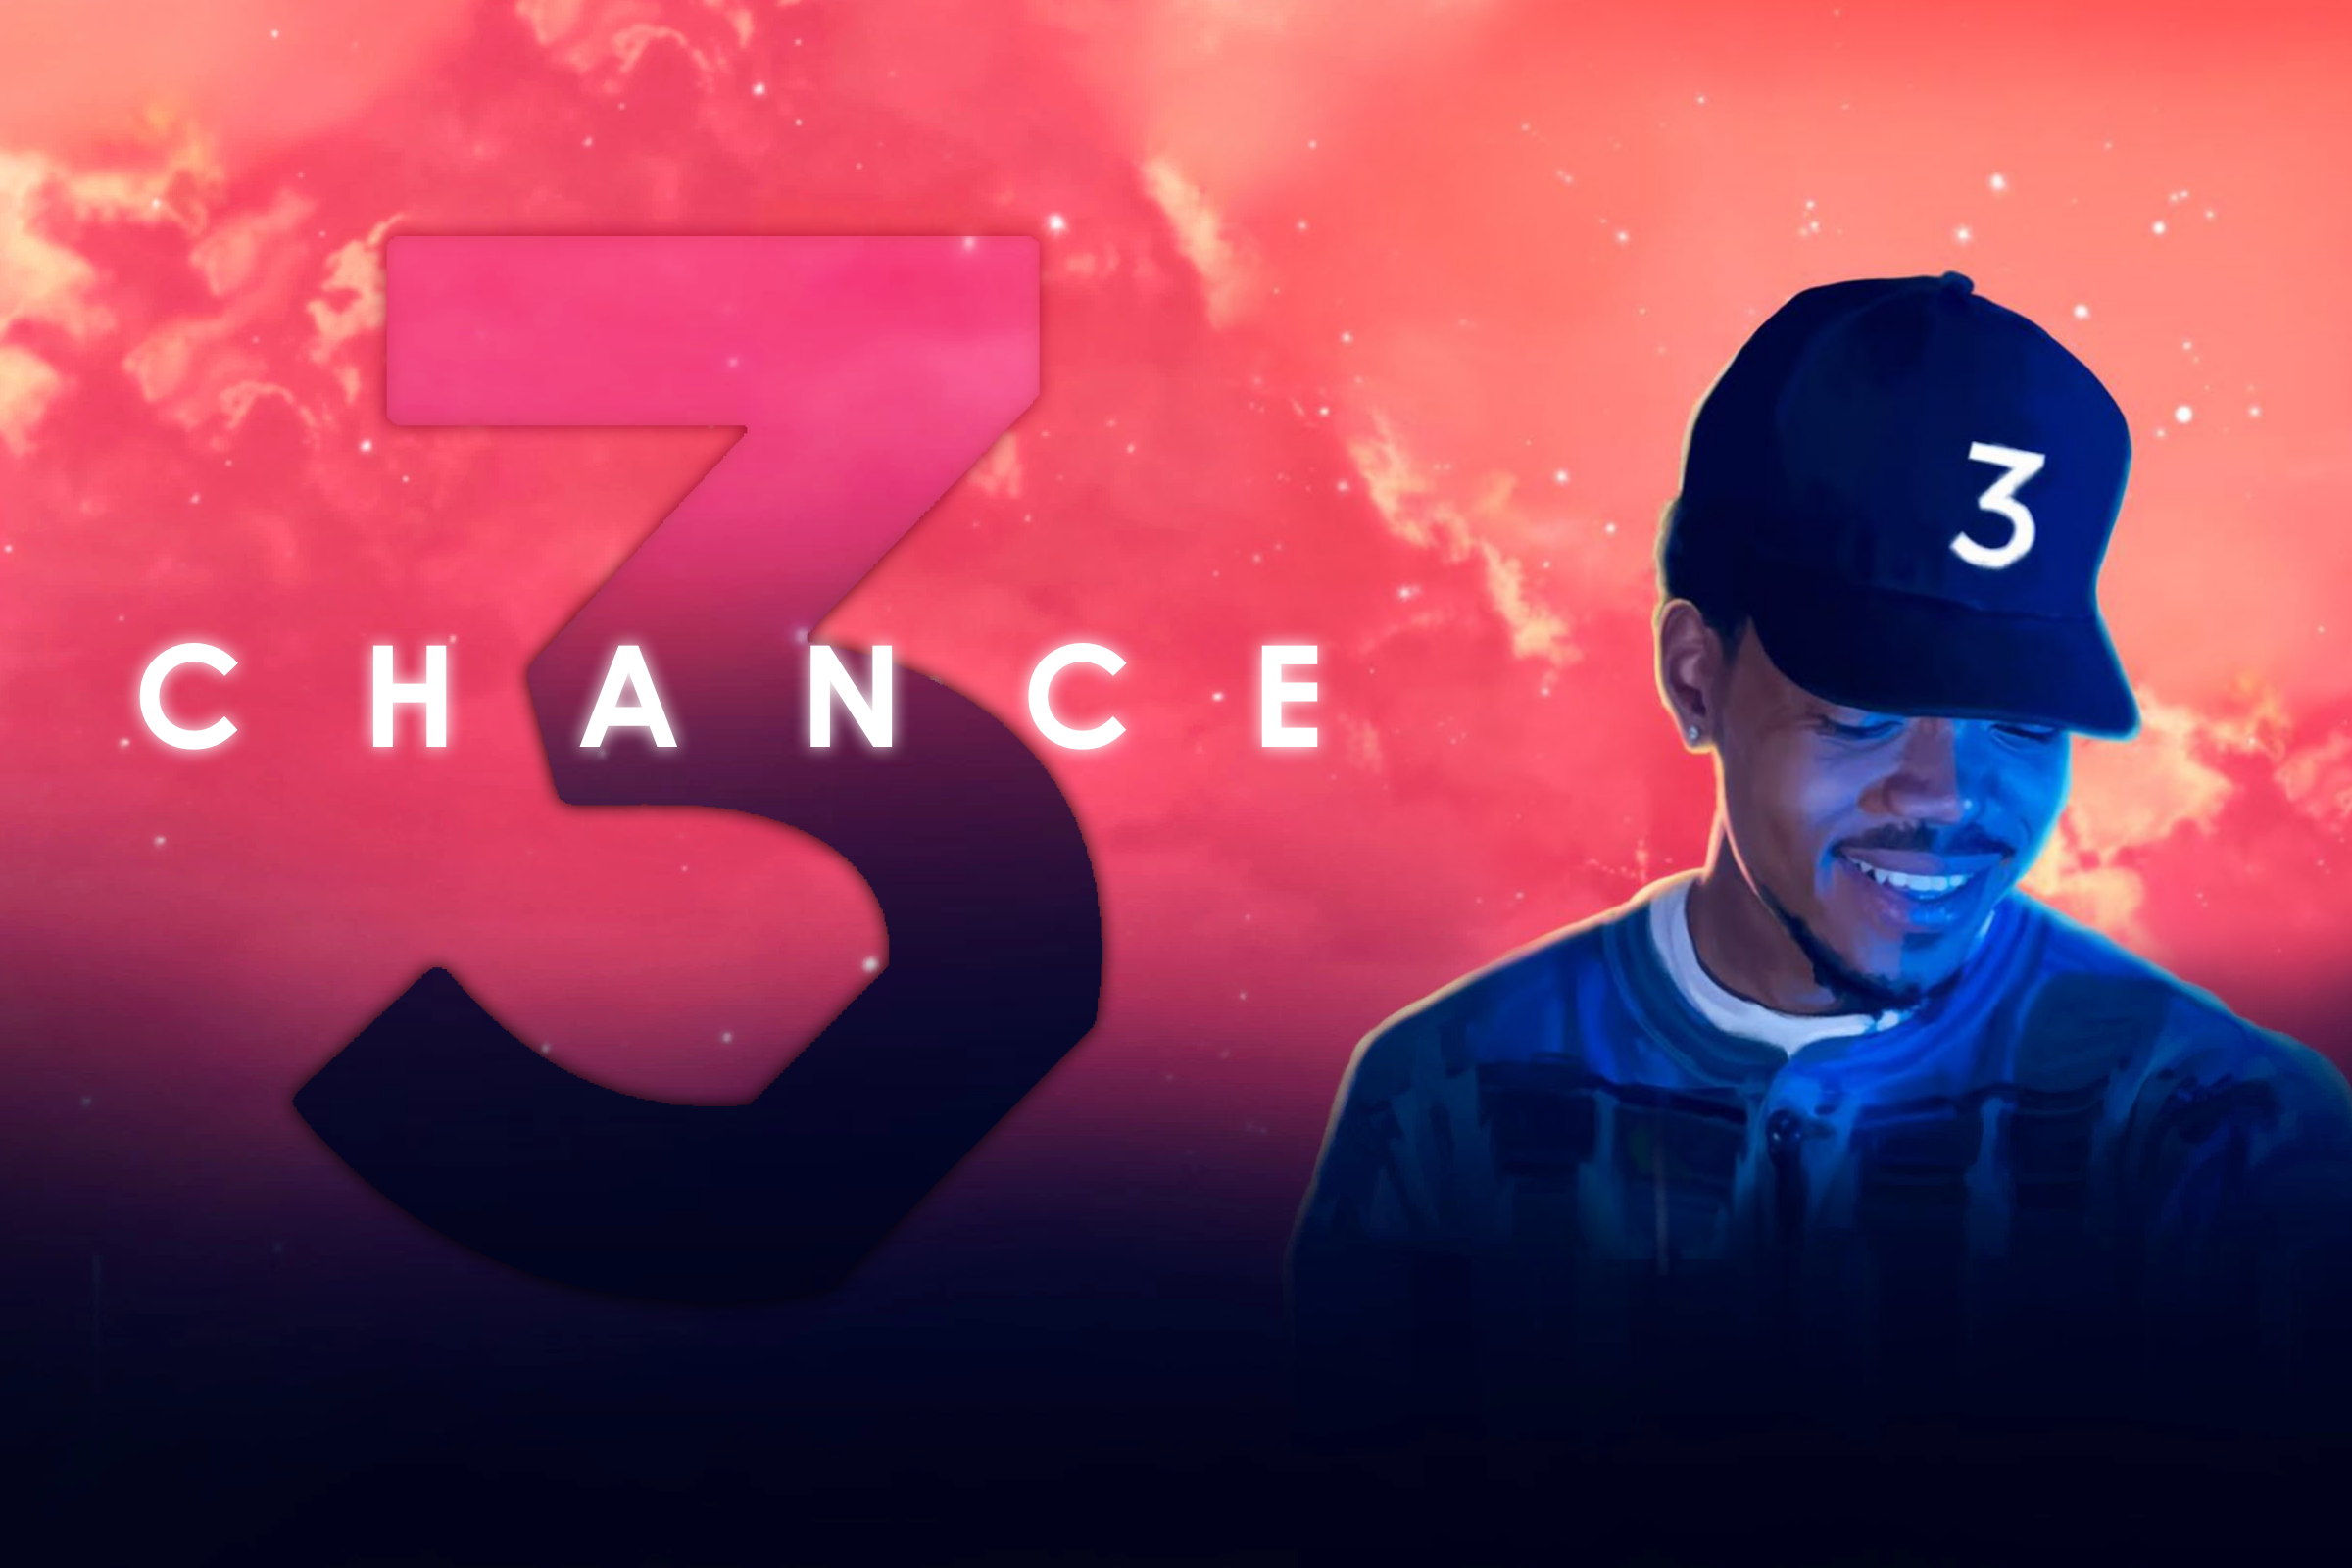 Hiphop Wallpapers Hd Desktop Backgrounds Images And Pictures Chance The Rapper Wallpaper Chance The Rapper Logic Rapper Wallpaper